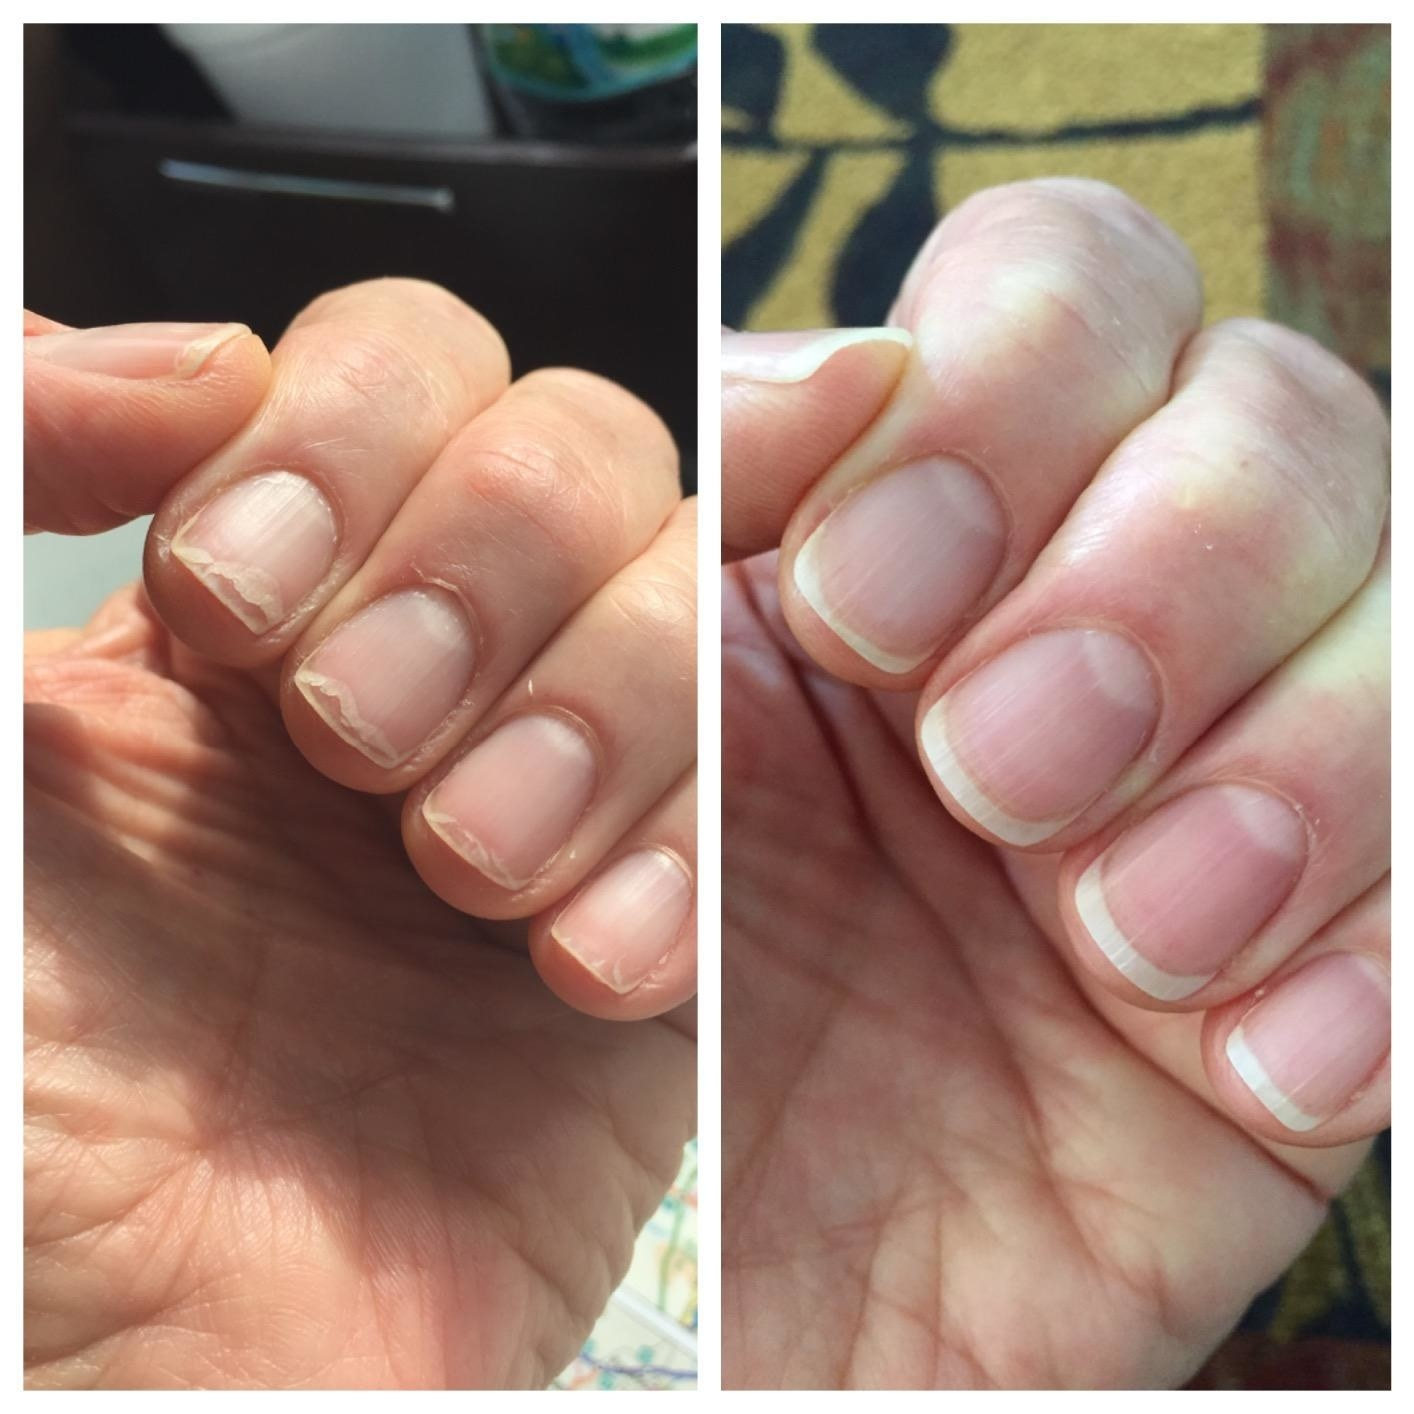 left: reviewer nails looking chipped and peeling right: nails look much better with no peeling